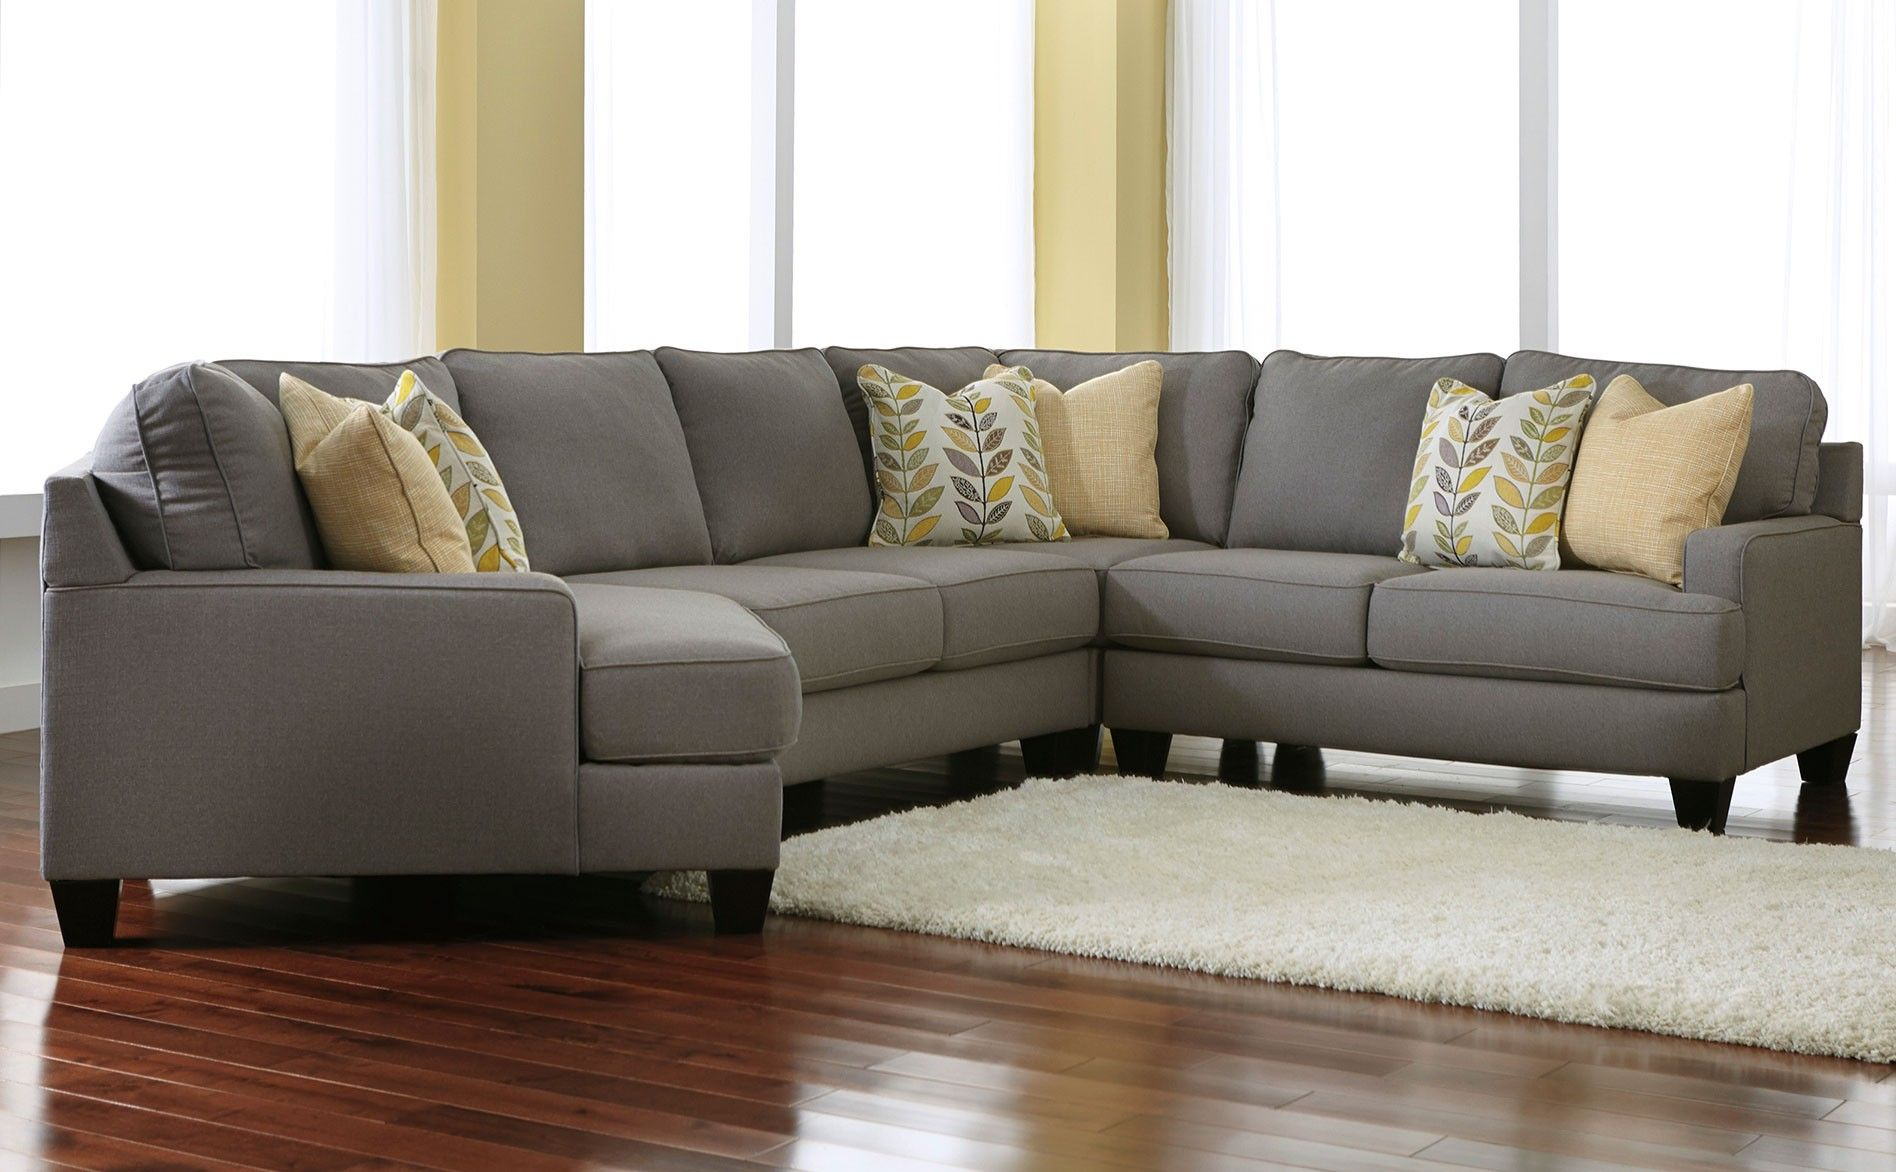 Marvelous Ashley Chamberly 4 Piece Sectional Alloy Sectionals Download Free Architecture Designs Rallybritishbridgeorg